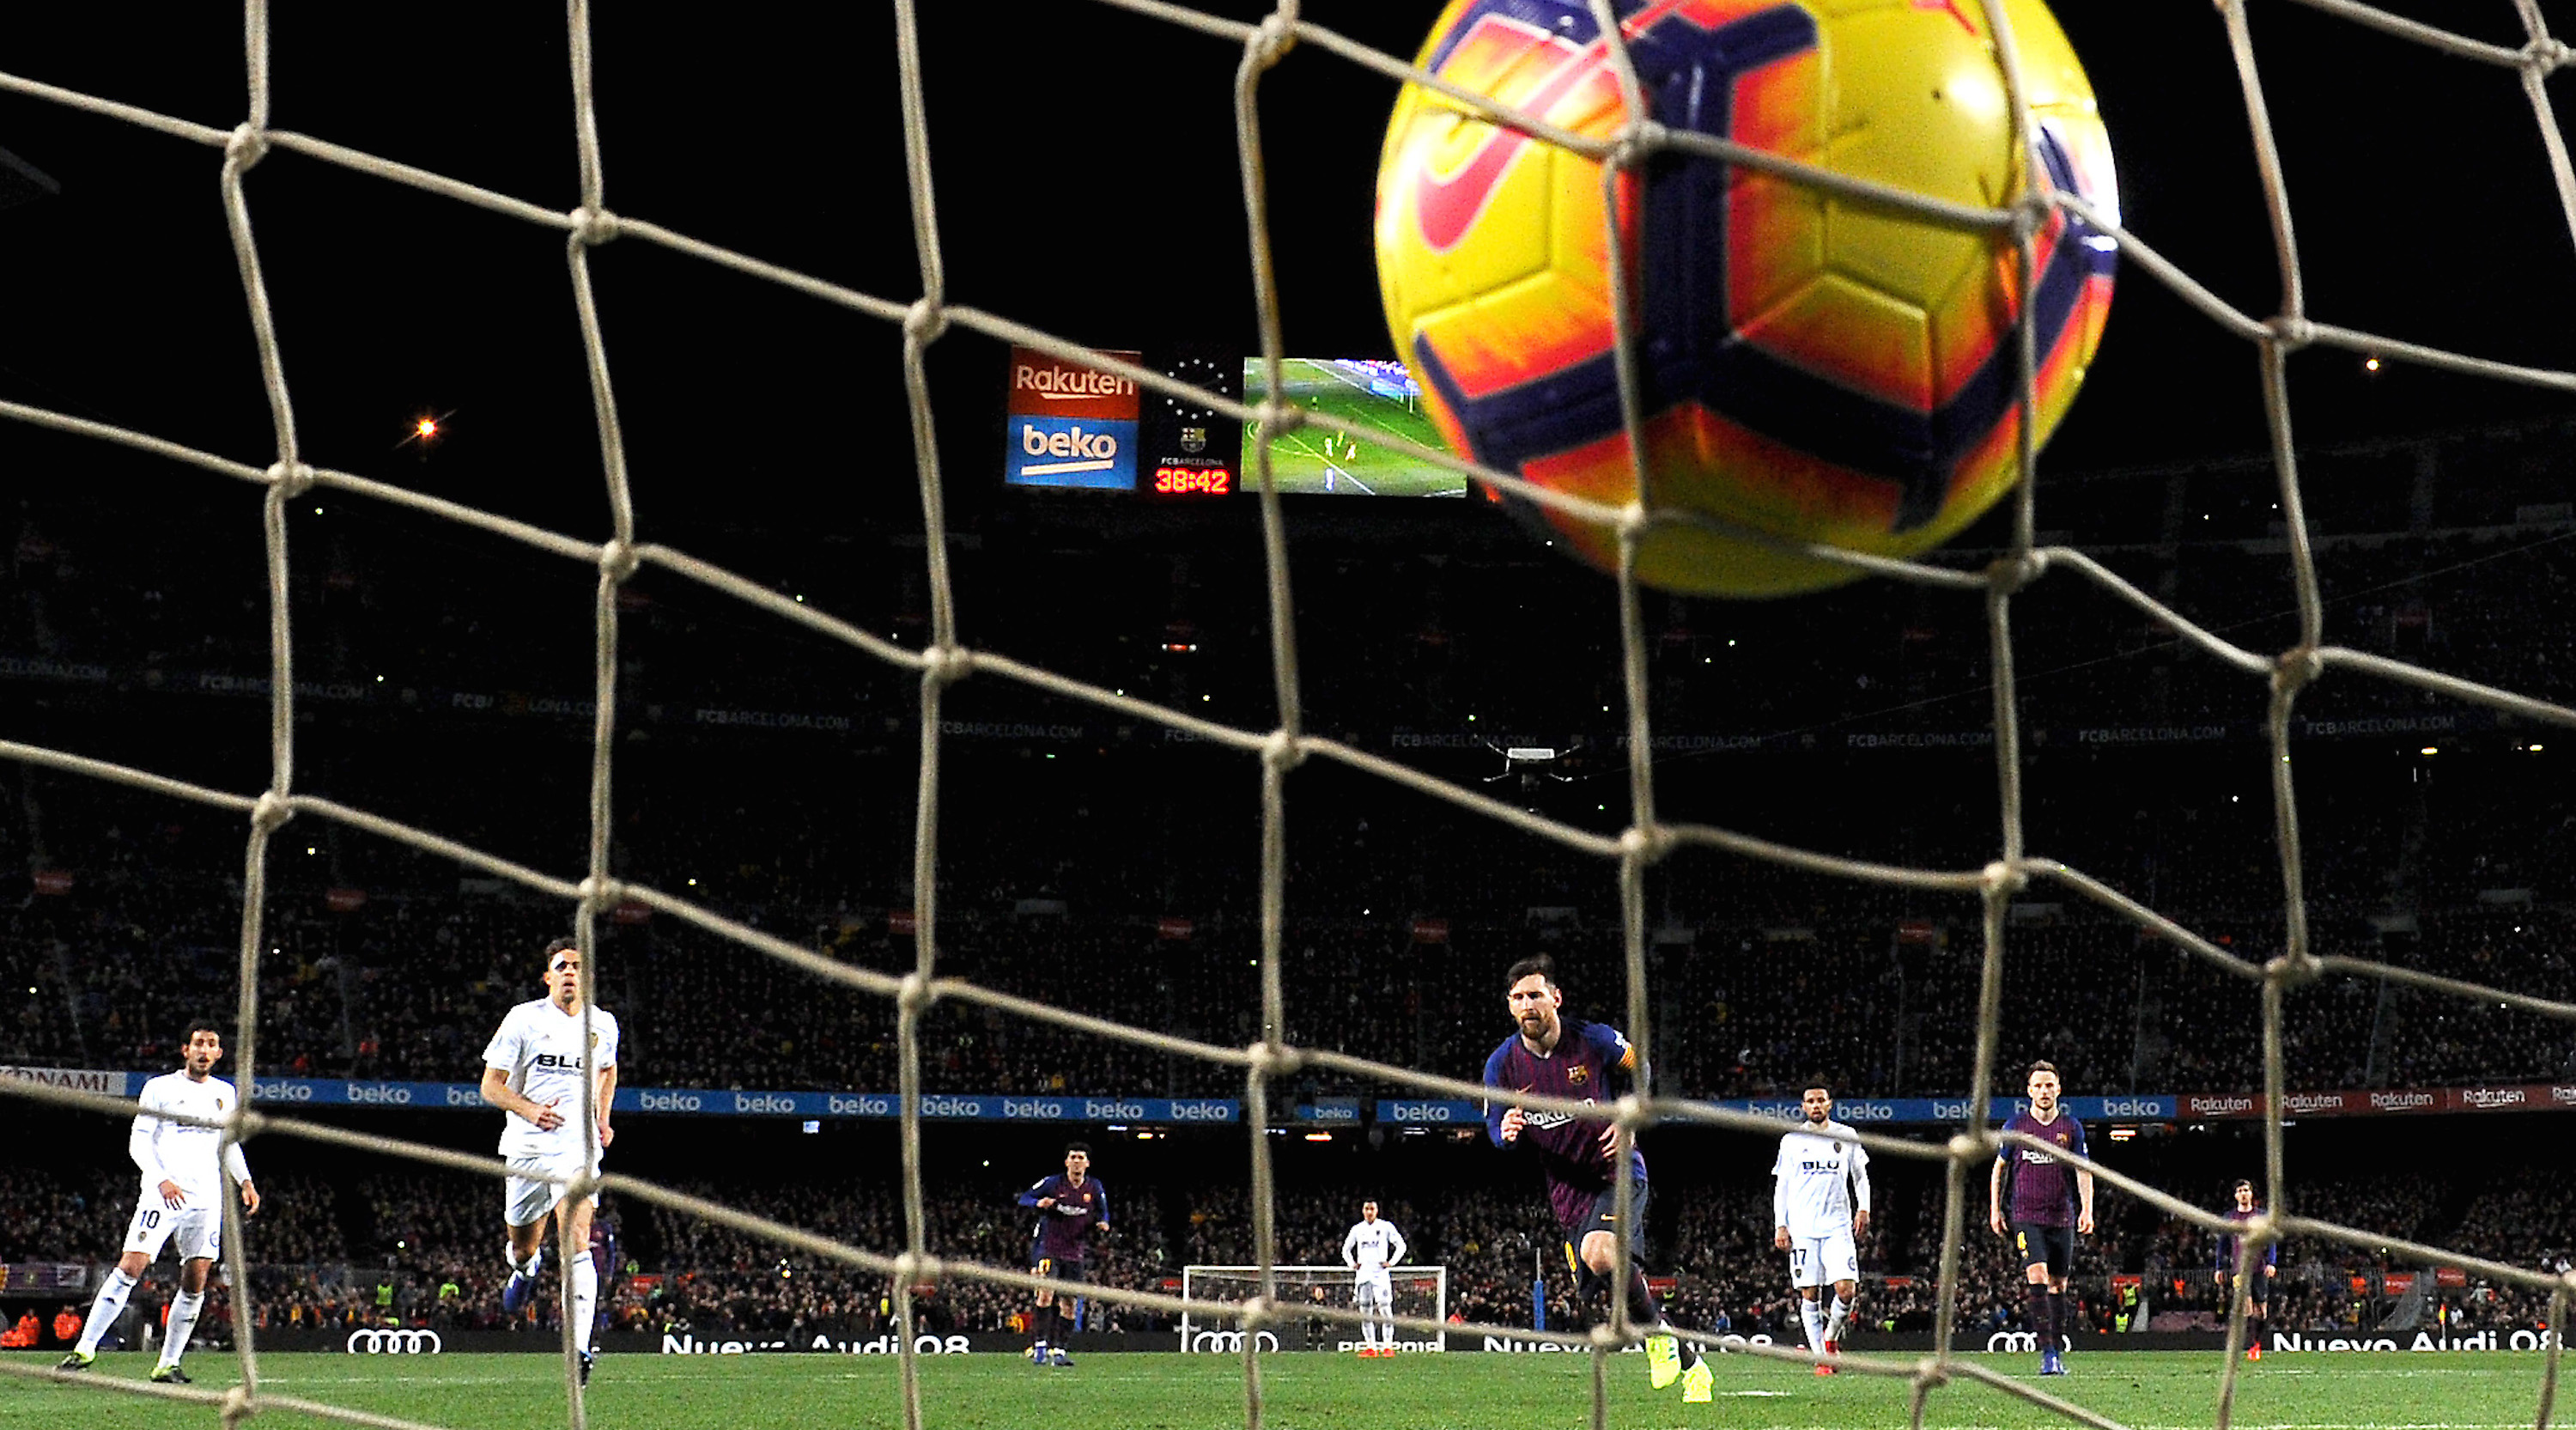 Lionel Messi of Barcelona scores his team's first goal during the La Liga match between FC Barcelona and Valencia CF at Camp Nou on February 2, 2019 in Barcelona, Spain. (Photo by Alex Caparros/Getty Images)